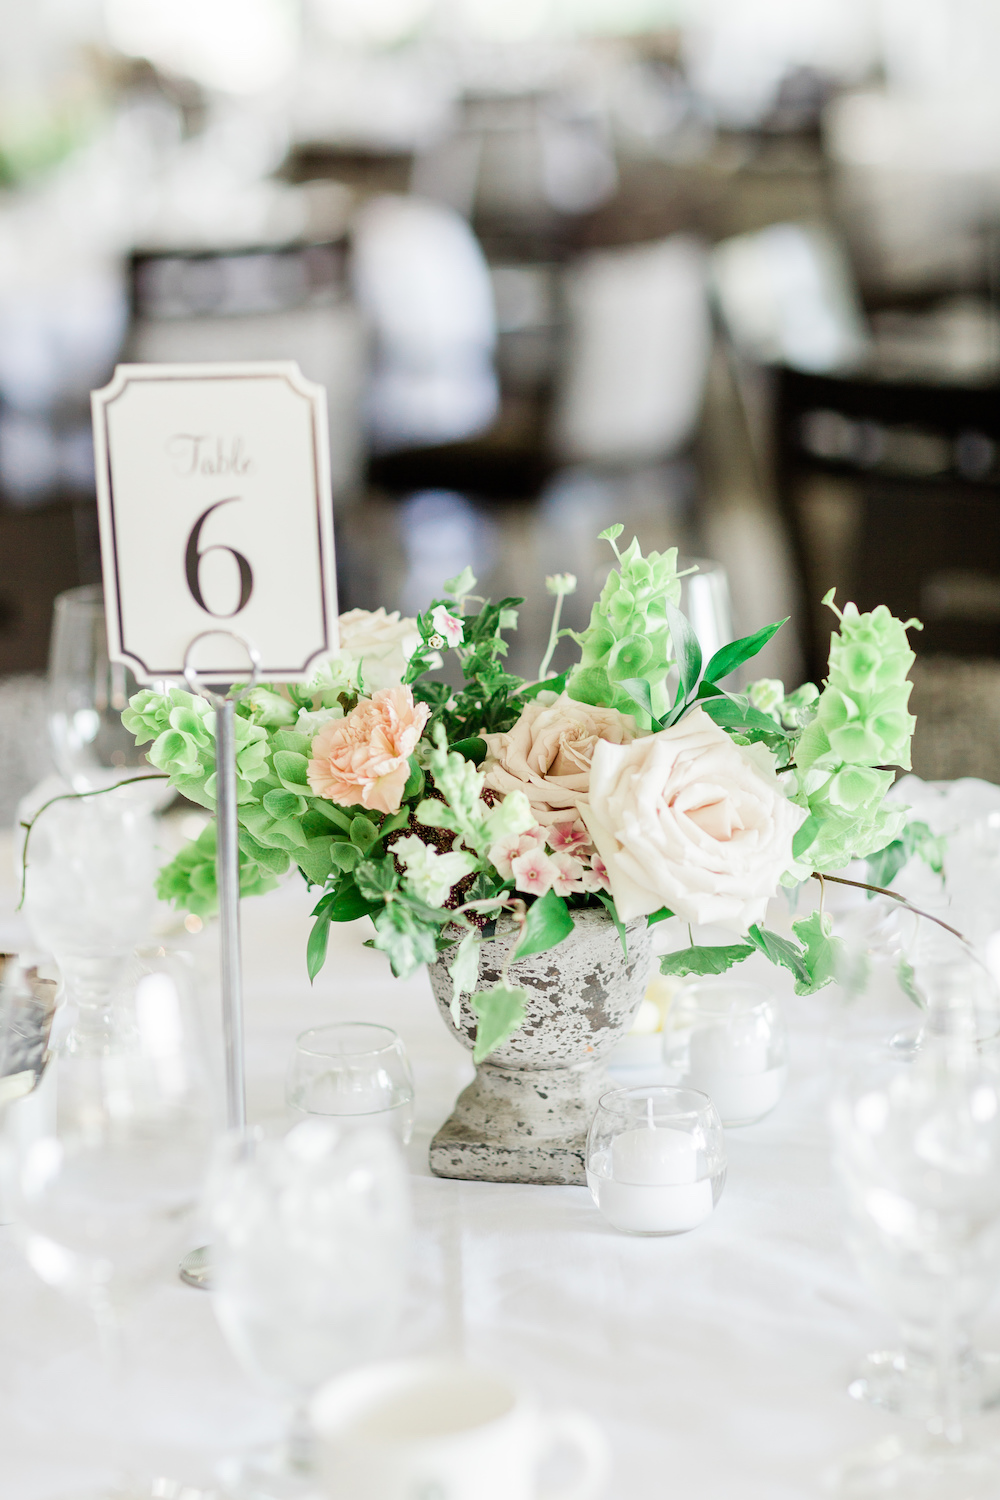 Garden Inspired Wedding Centrepiece - Wedding Flowers winnipeg